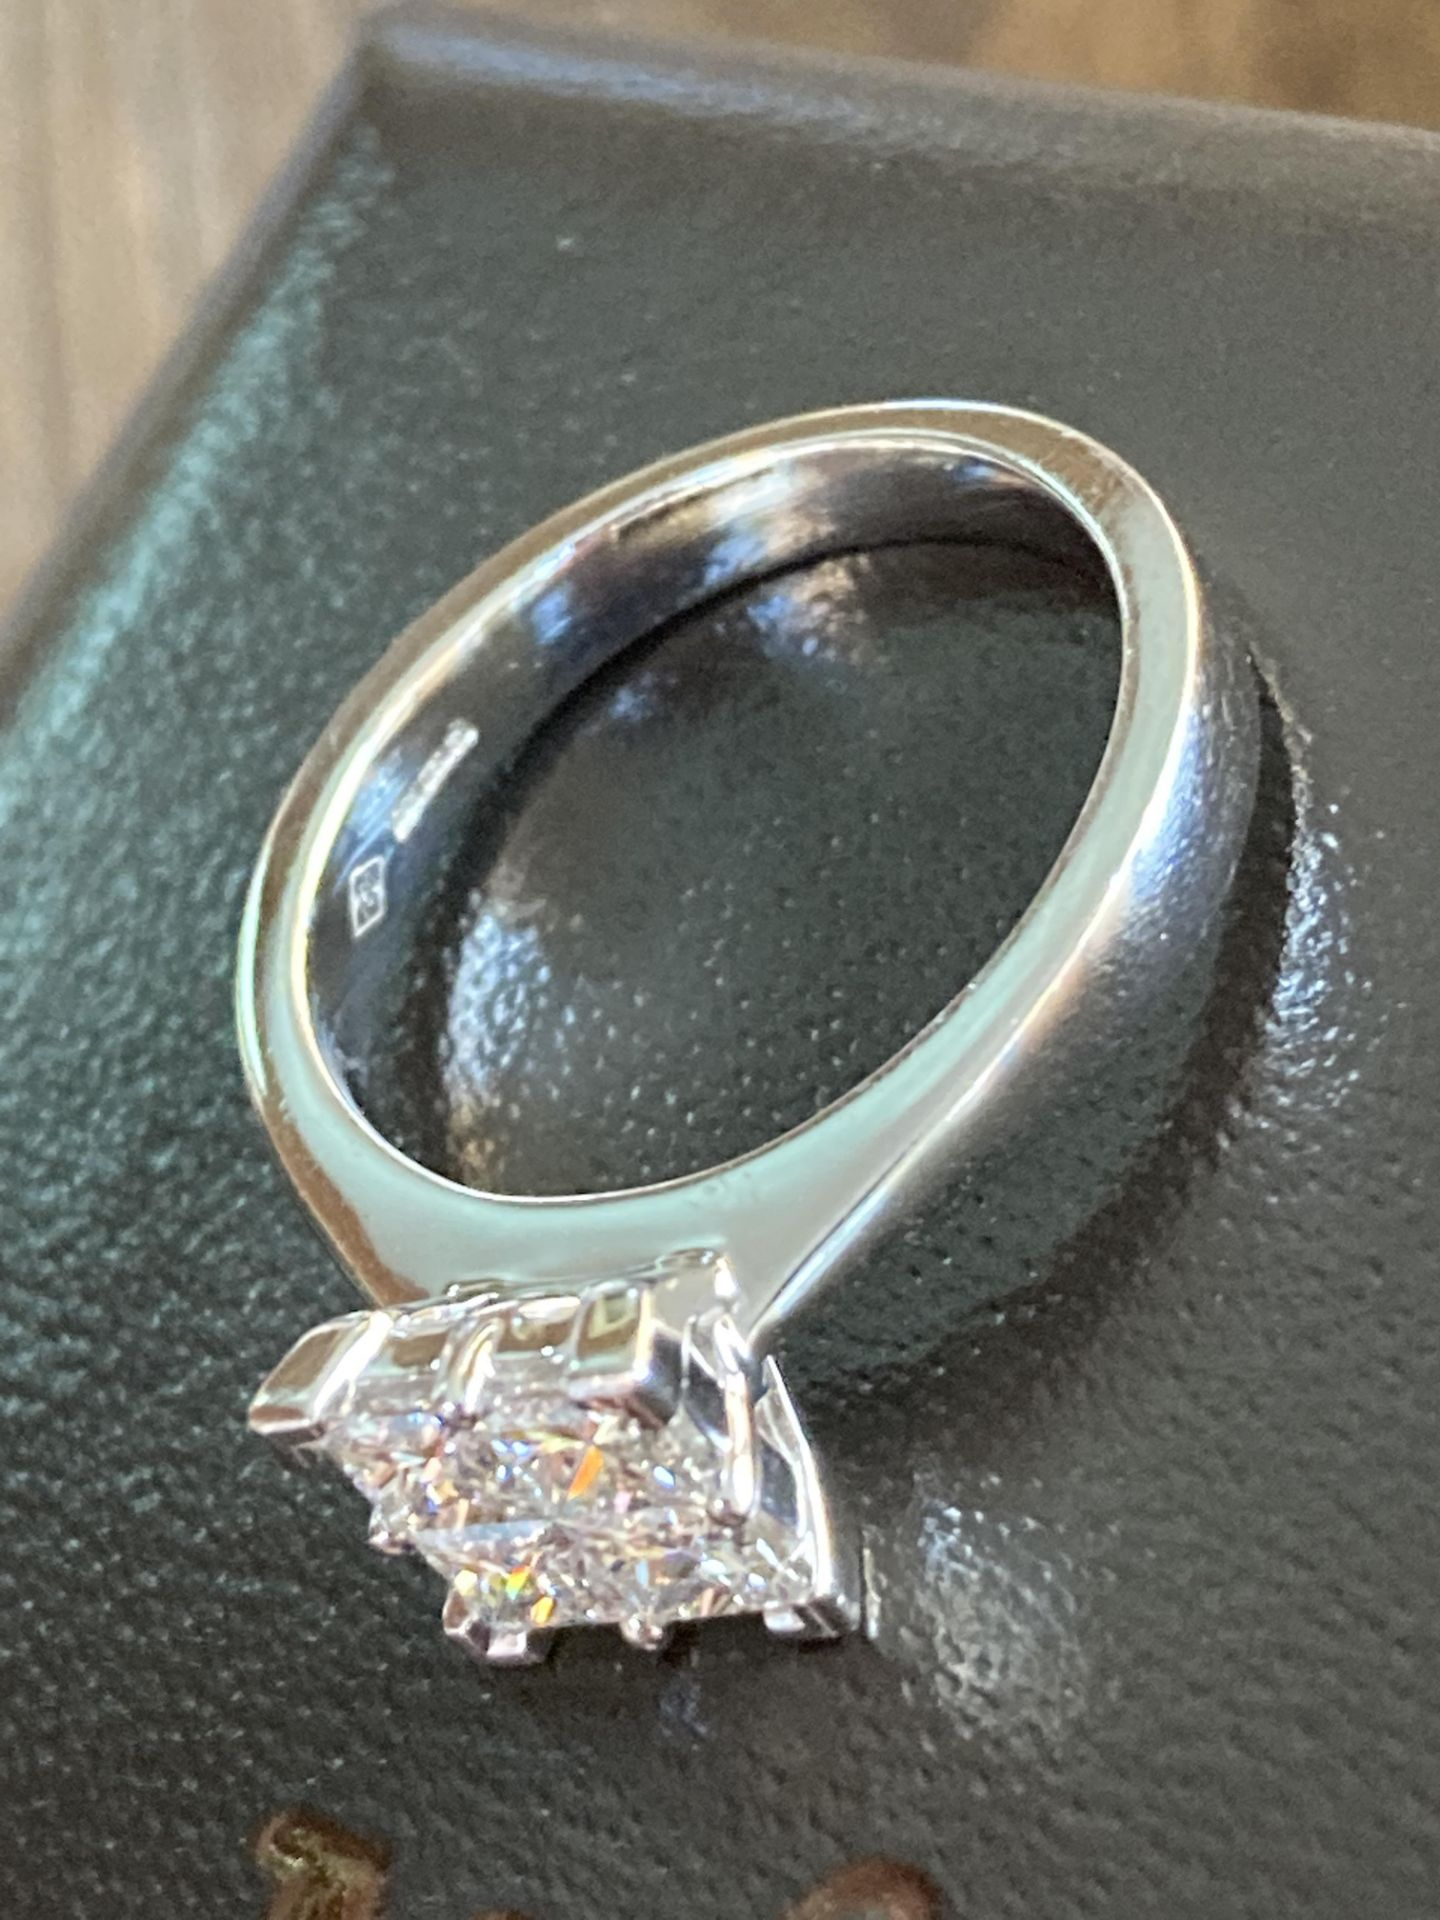 0.8-1CT APPROX. PRINCESS CUT DIAMOND RING IN 18CT WHITE GOLD - SIZE: M / WEIGHT: 5.2G - Image 4 of 4